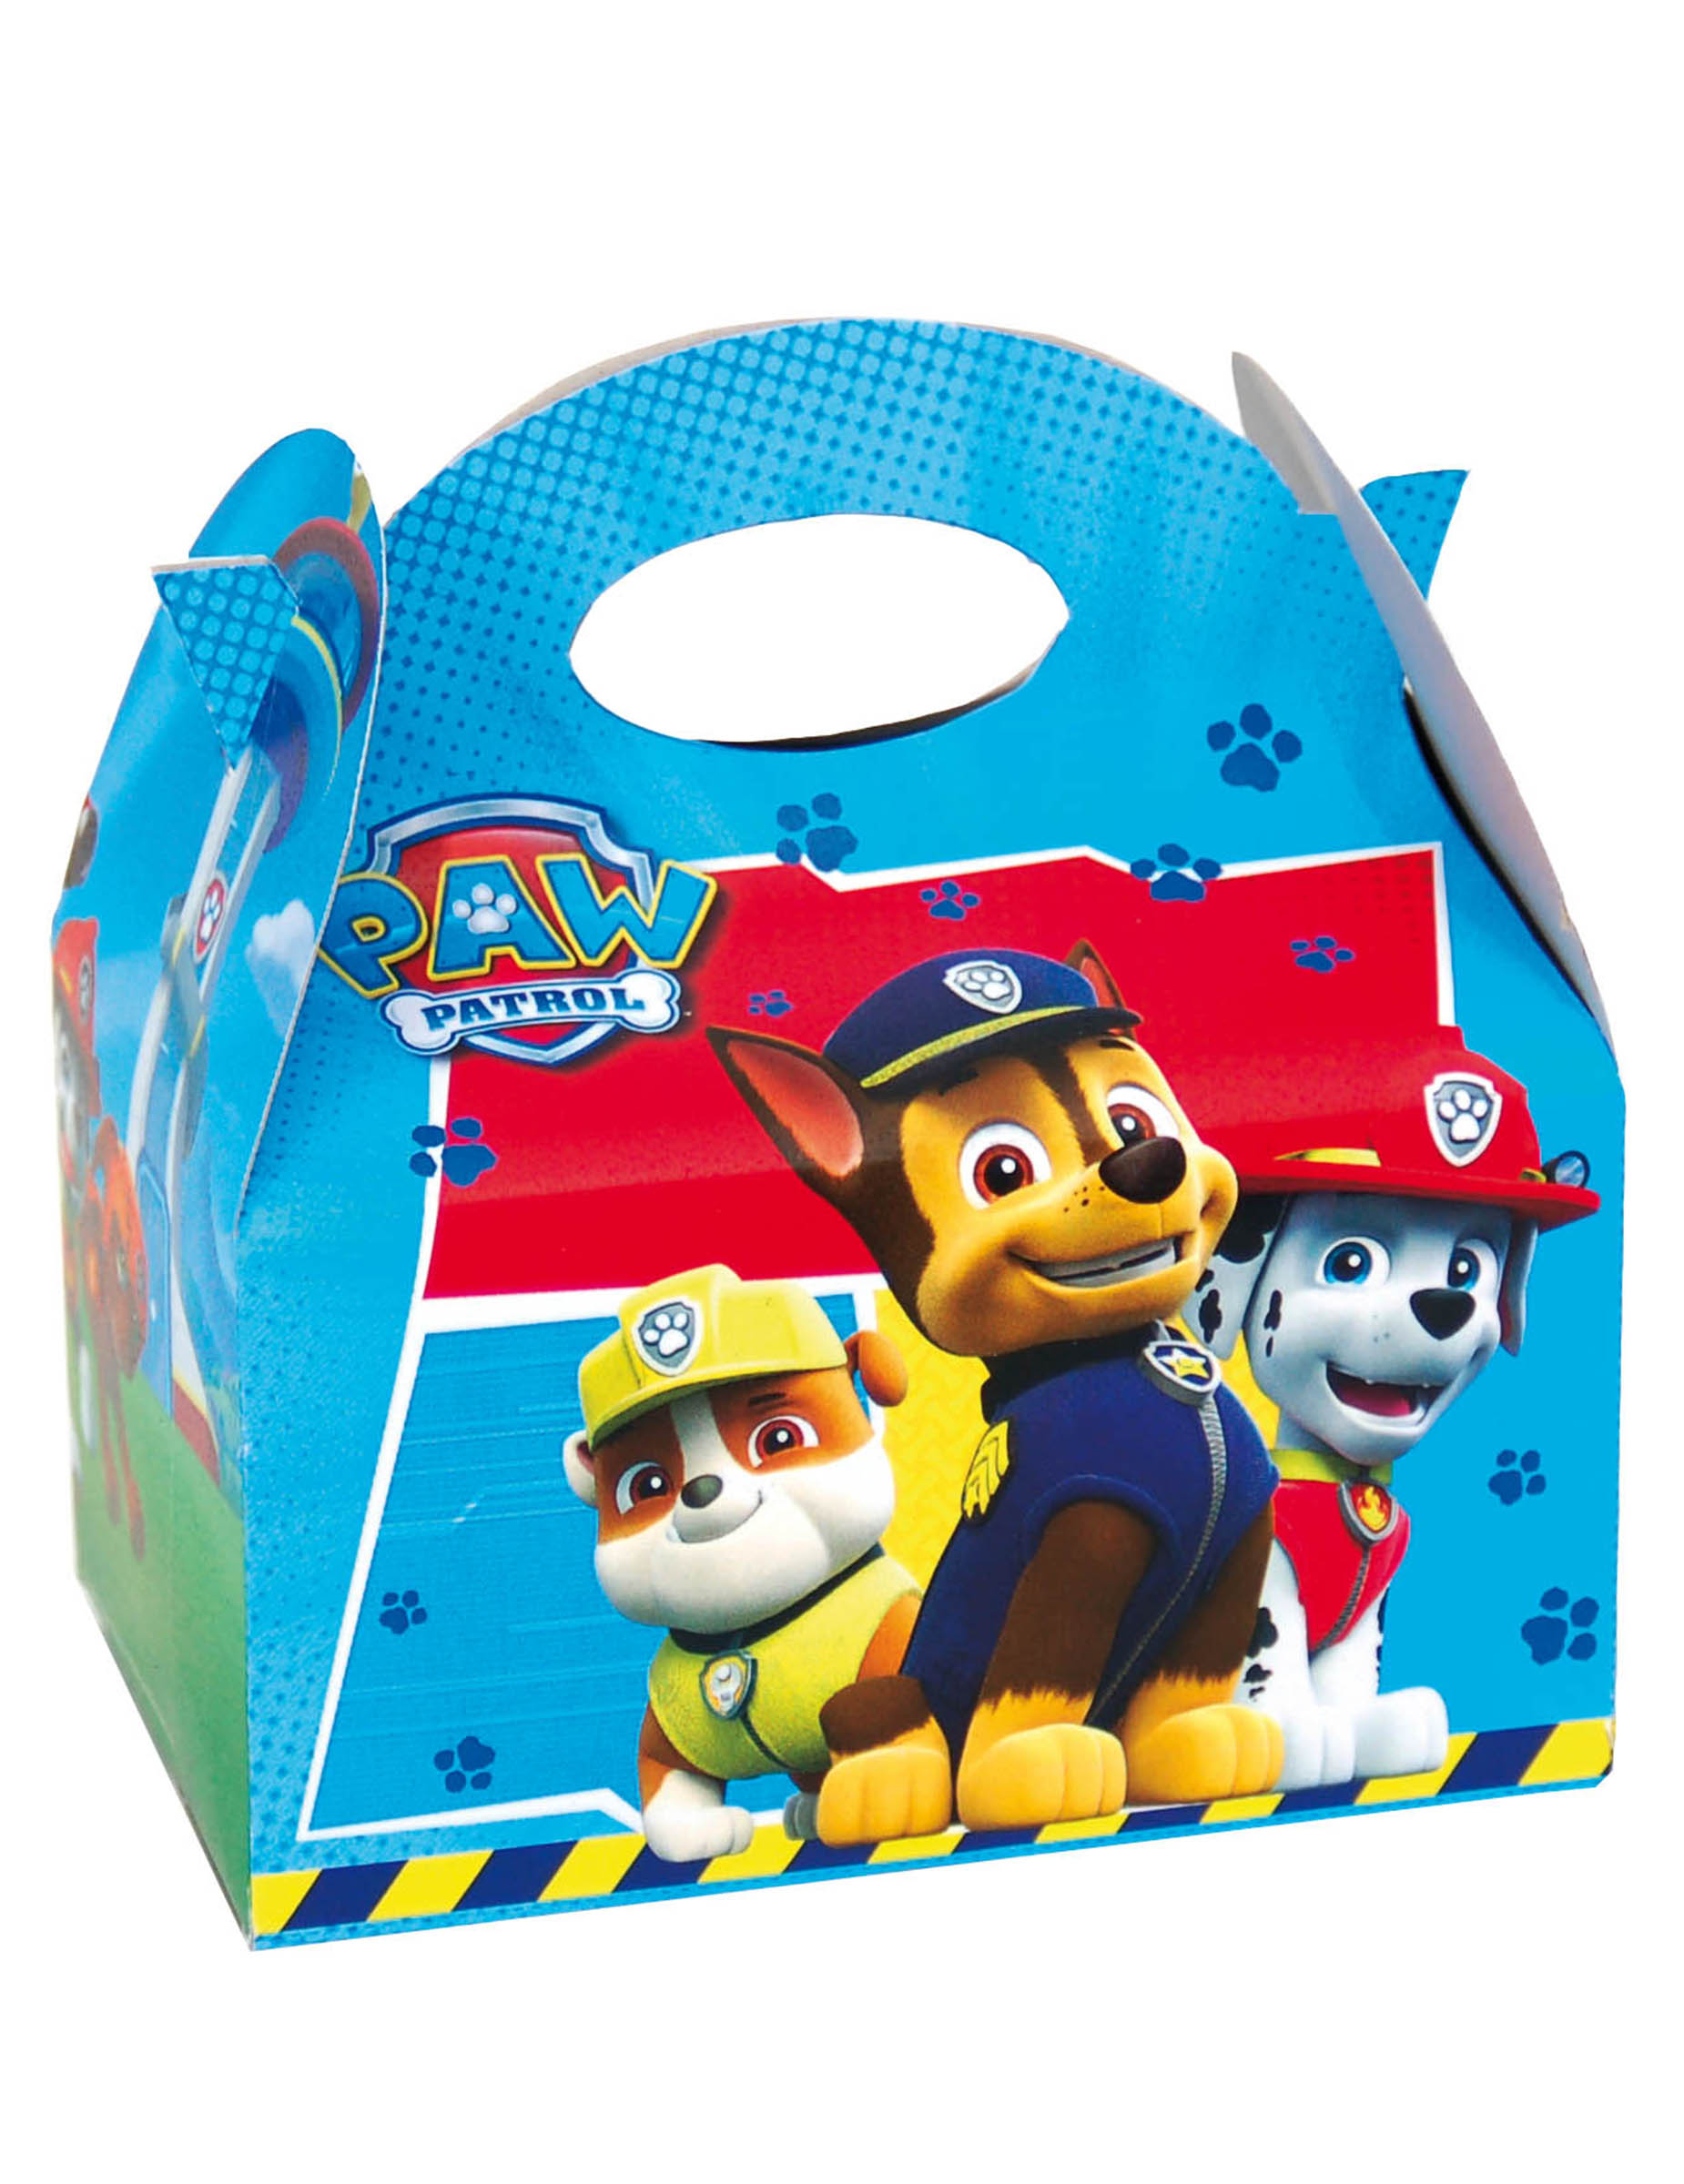 caja de regalo paw patrol 16 x 10 5 x 16 cm decoraci n y disfraces originales baratos vegaoo. Black Bedroom Furniture Sets. Home Design Ideas